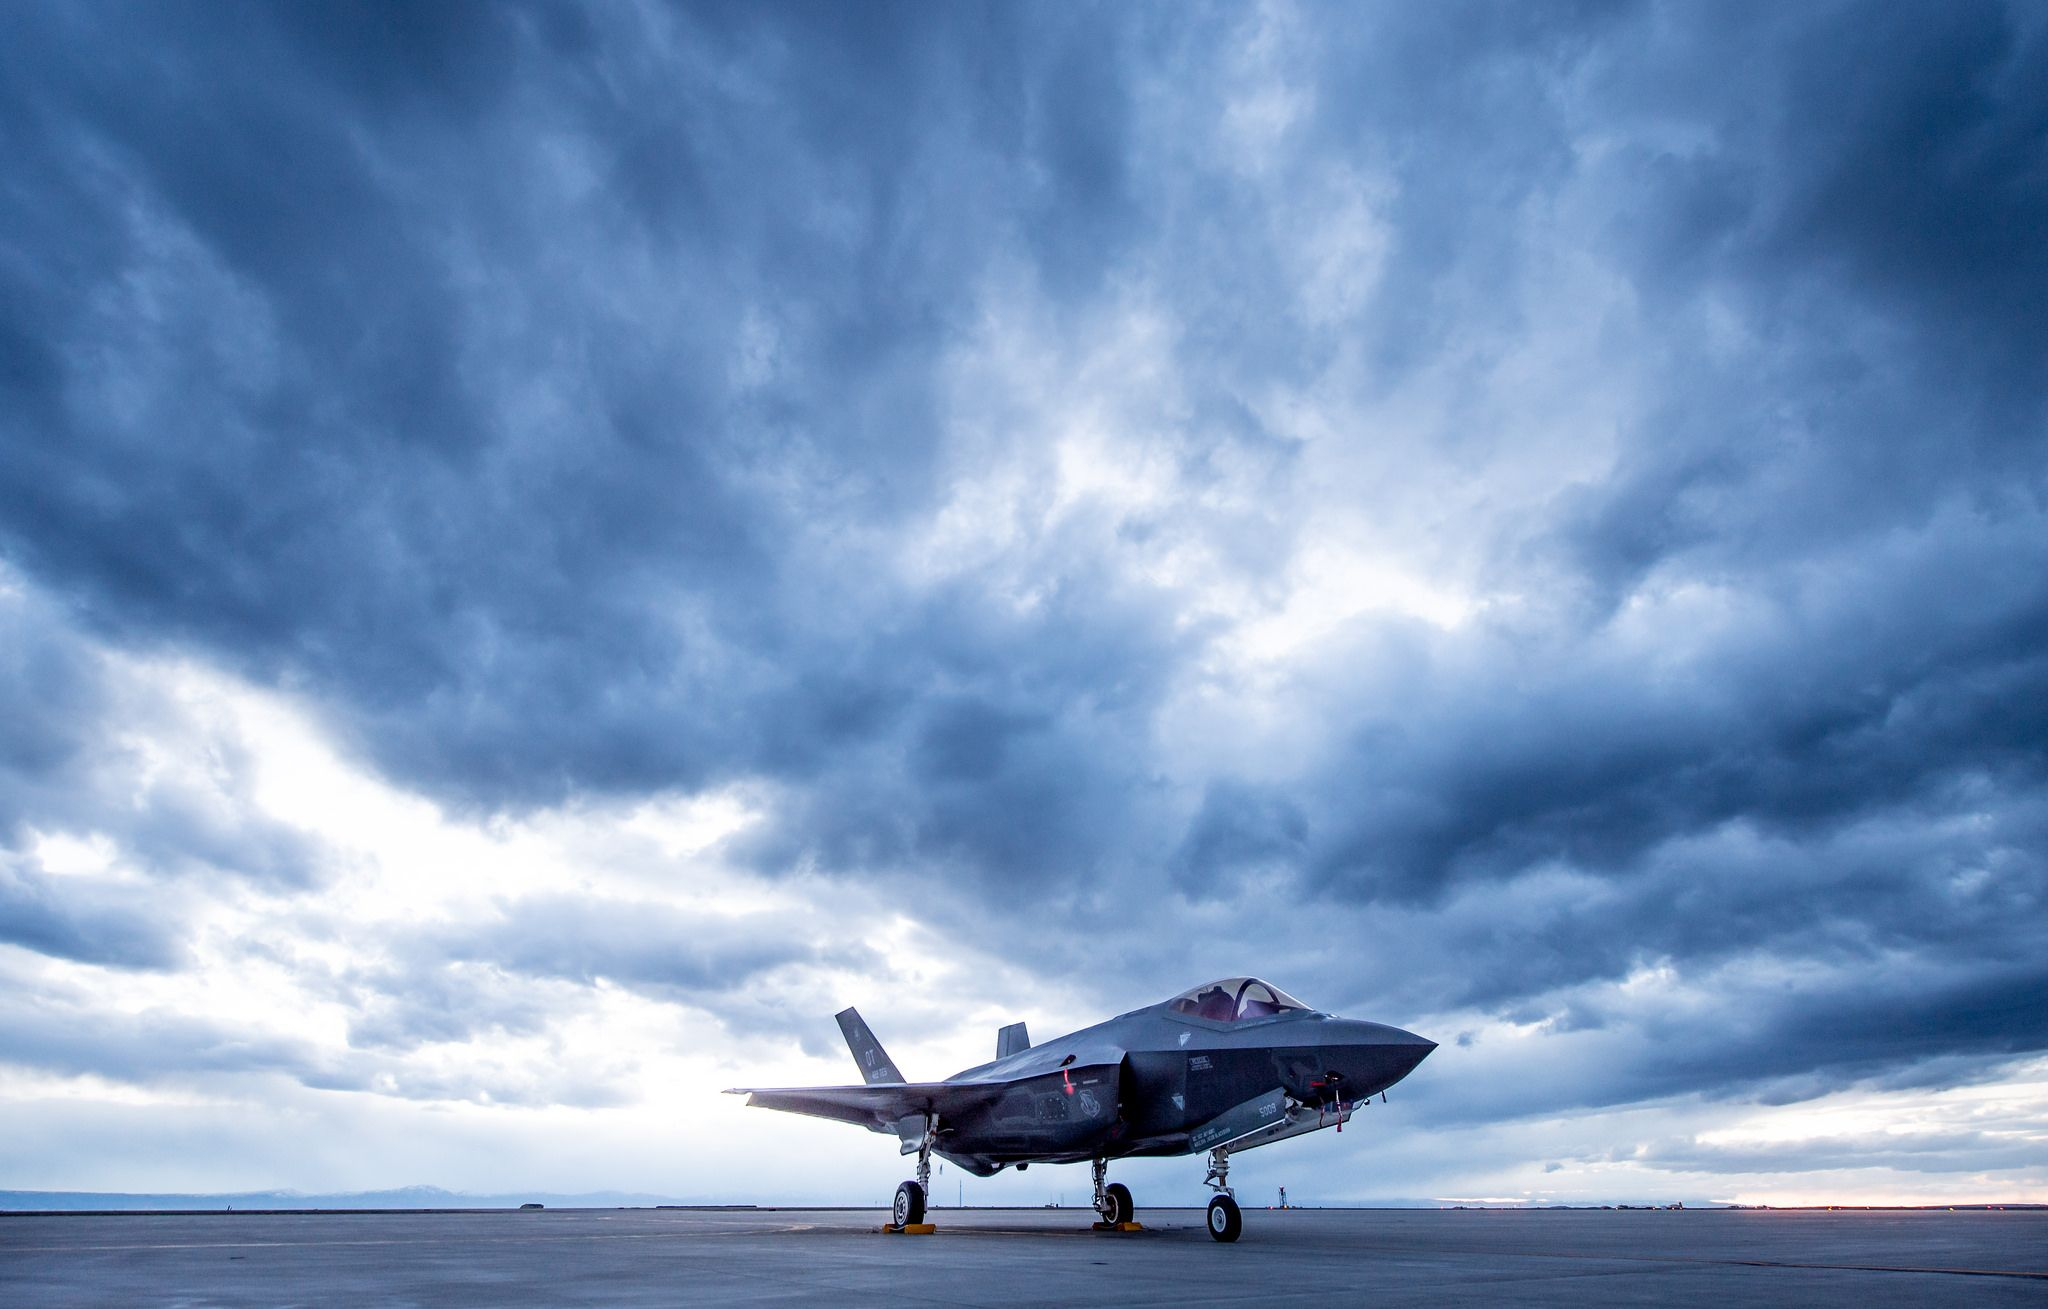 F-35 at Mountain Home AFB [2048x1309. wallpaper/ background for iPad mini/ air/ 2 / pro/ laptop @dquocbuu